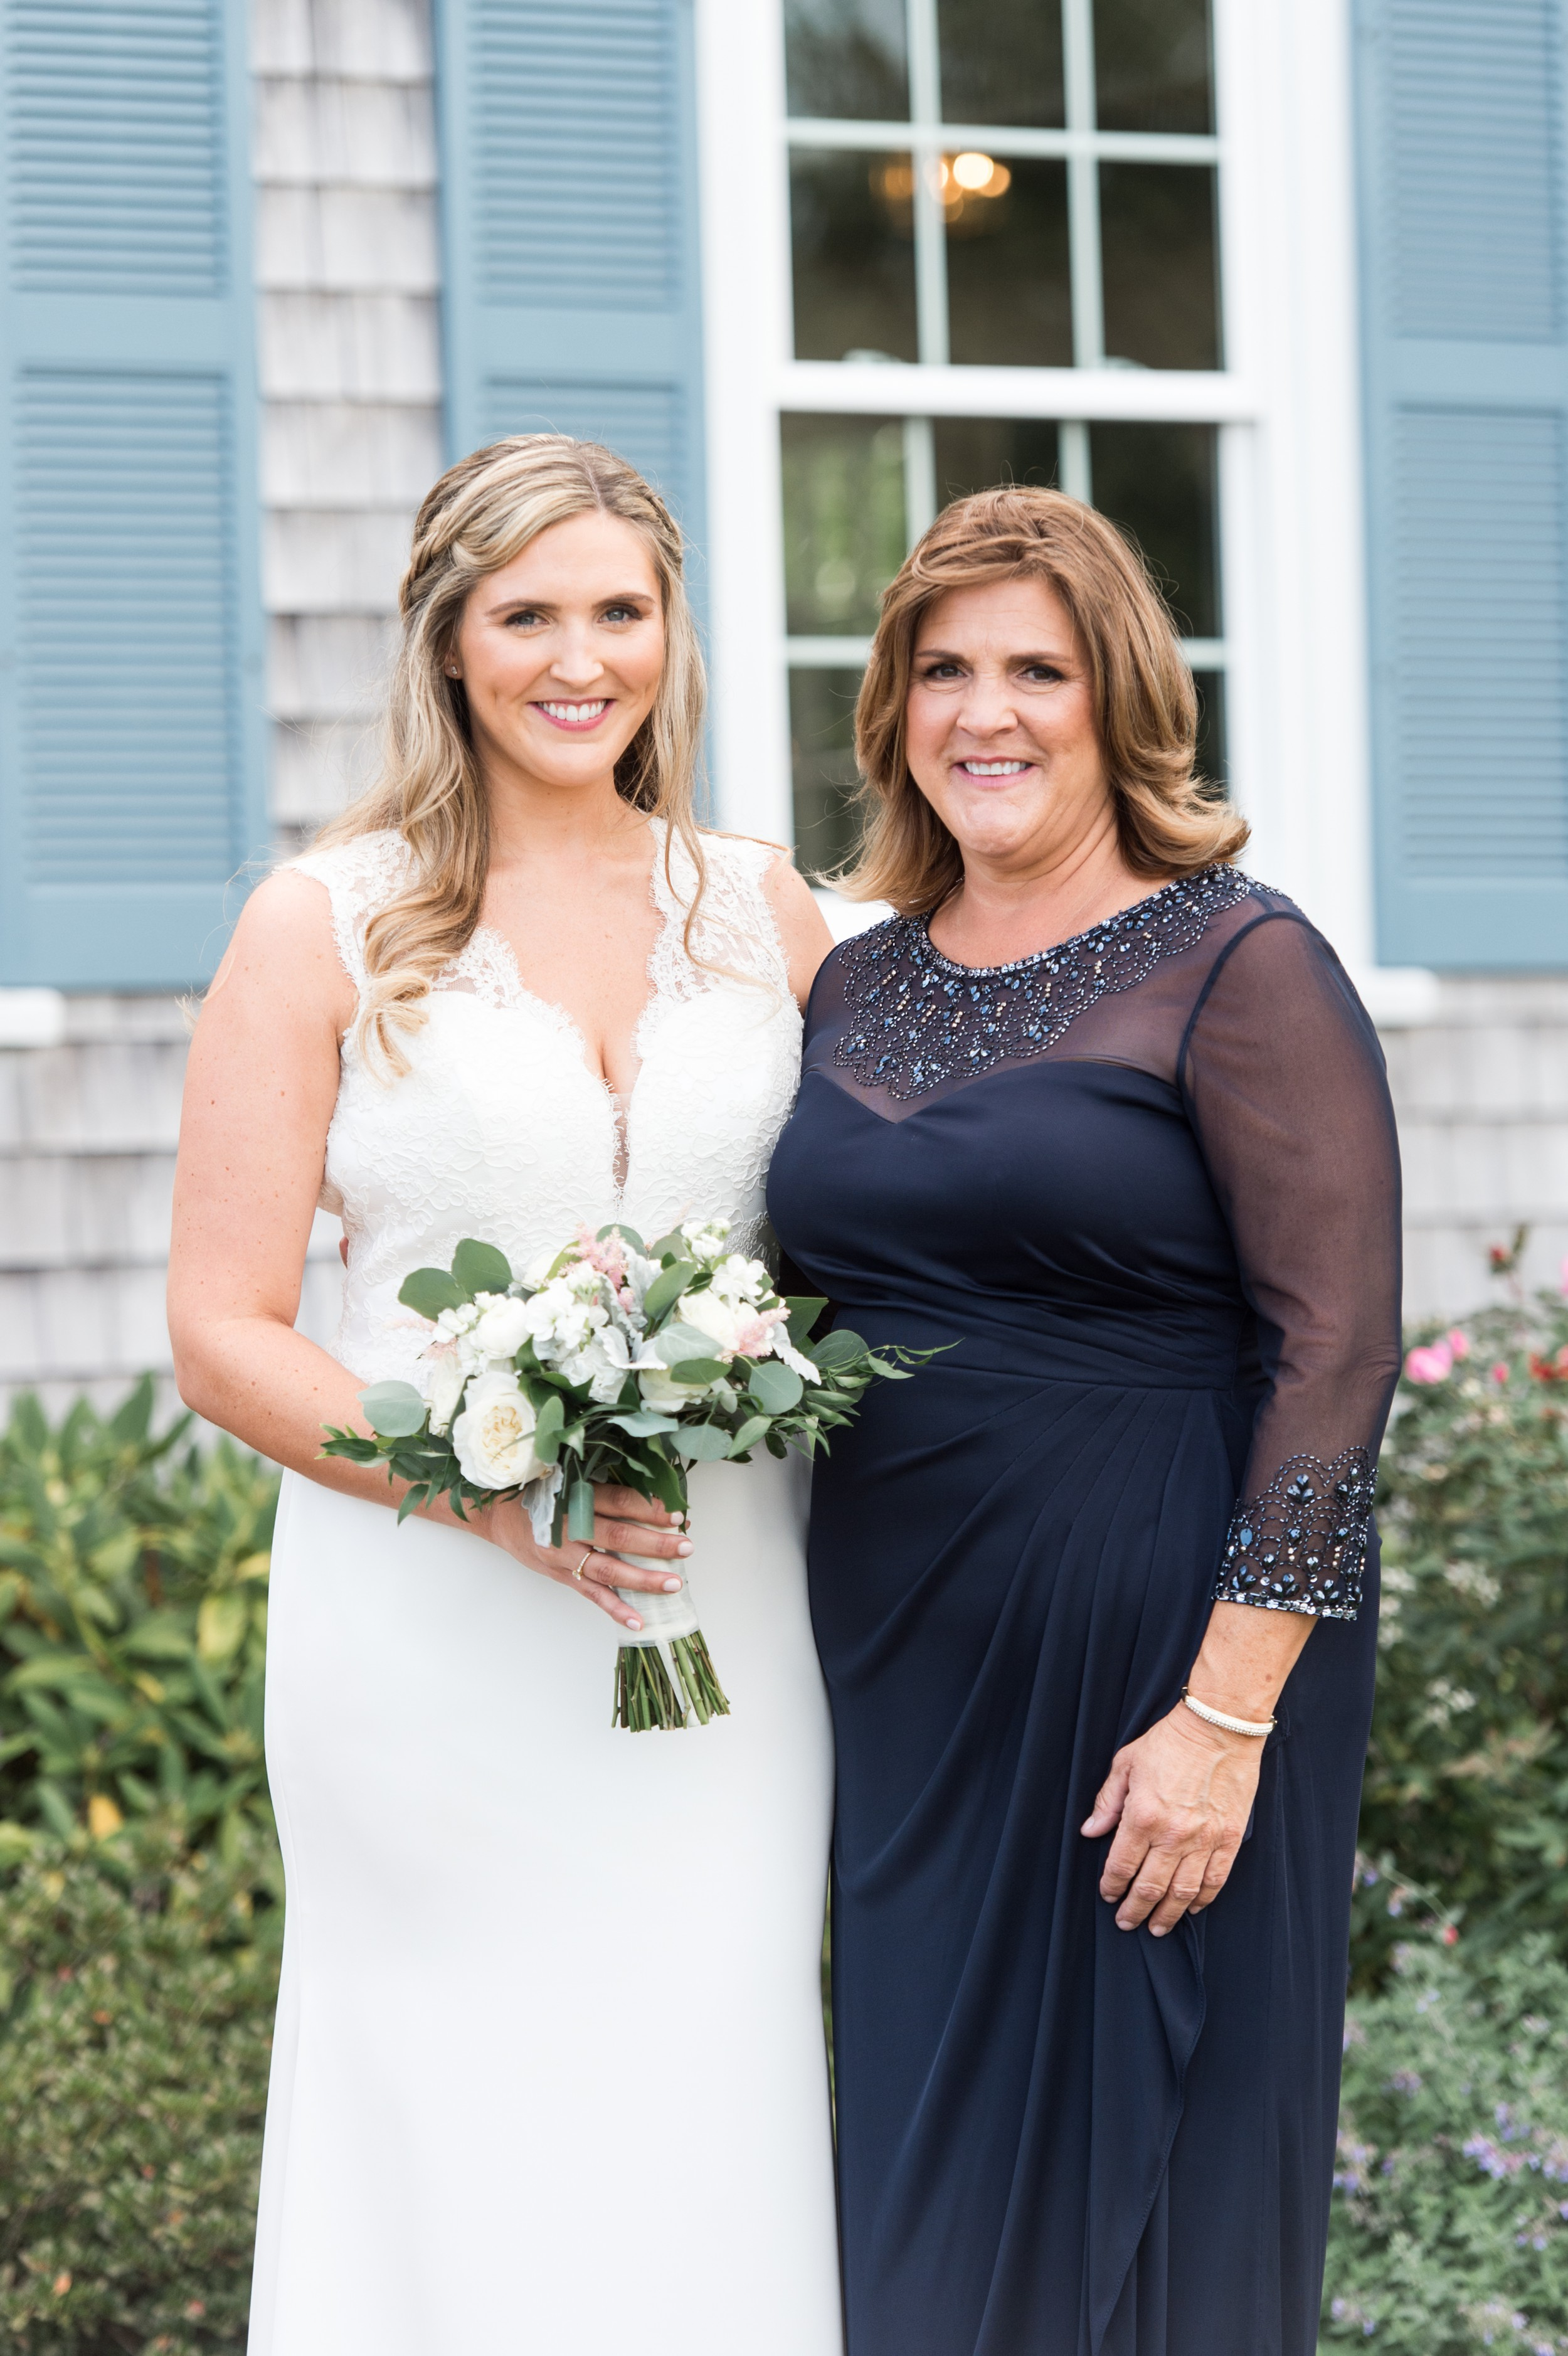 wedding planning family portraits made easy The Dennis Inn Wedding bride with her mom.jpg